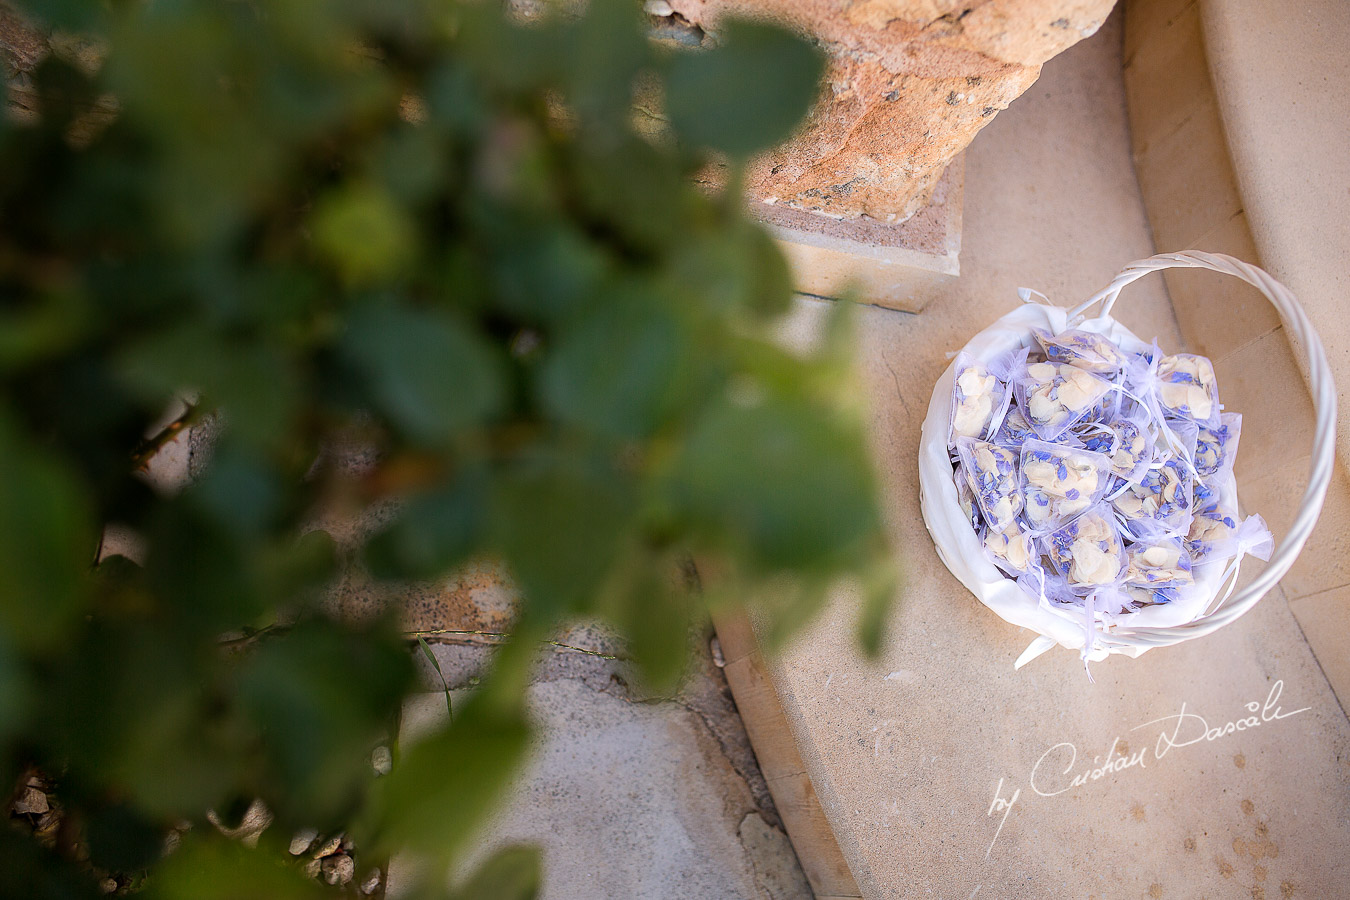 Wedding confetti and flower petals captured at a wedding at Minthis Hills in Cyprus, by Cristian Dascalu.